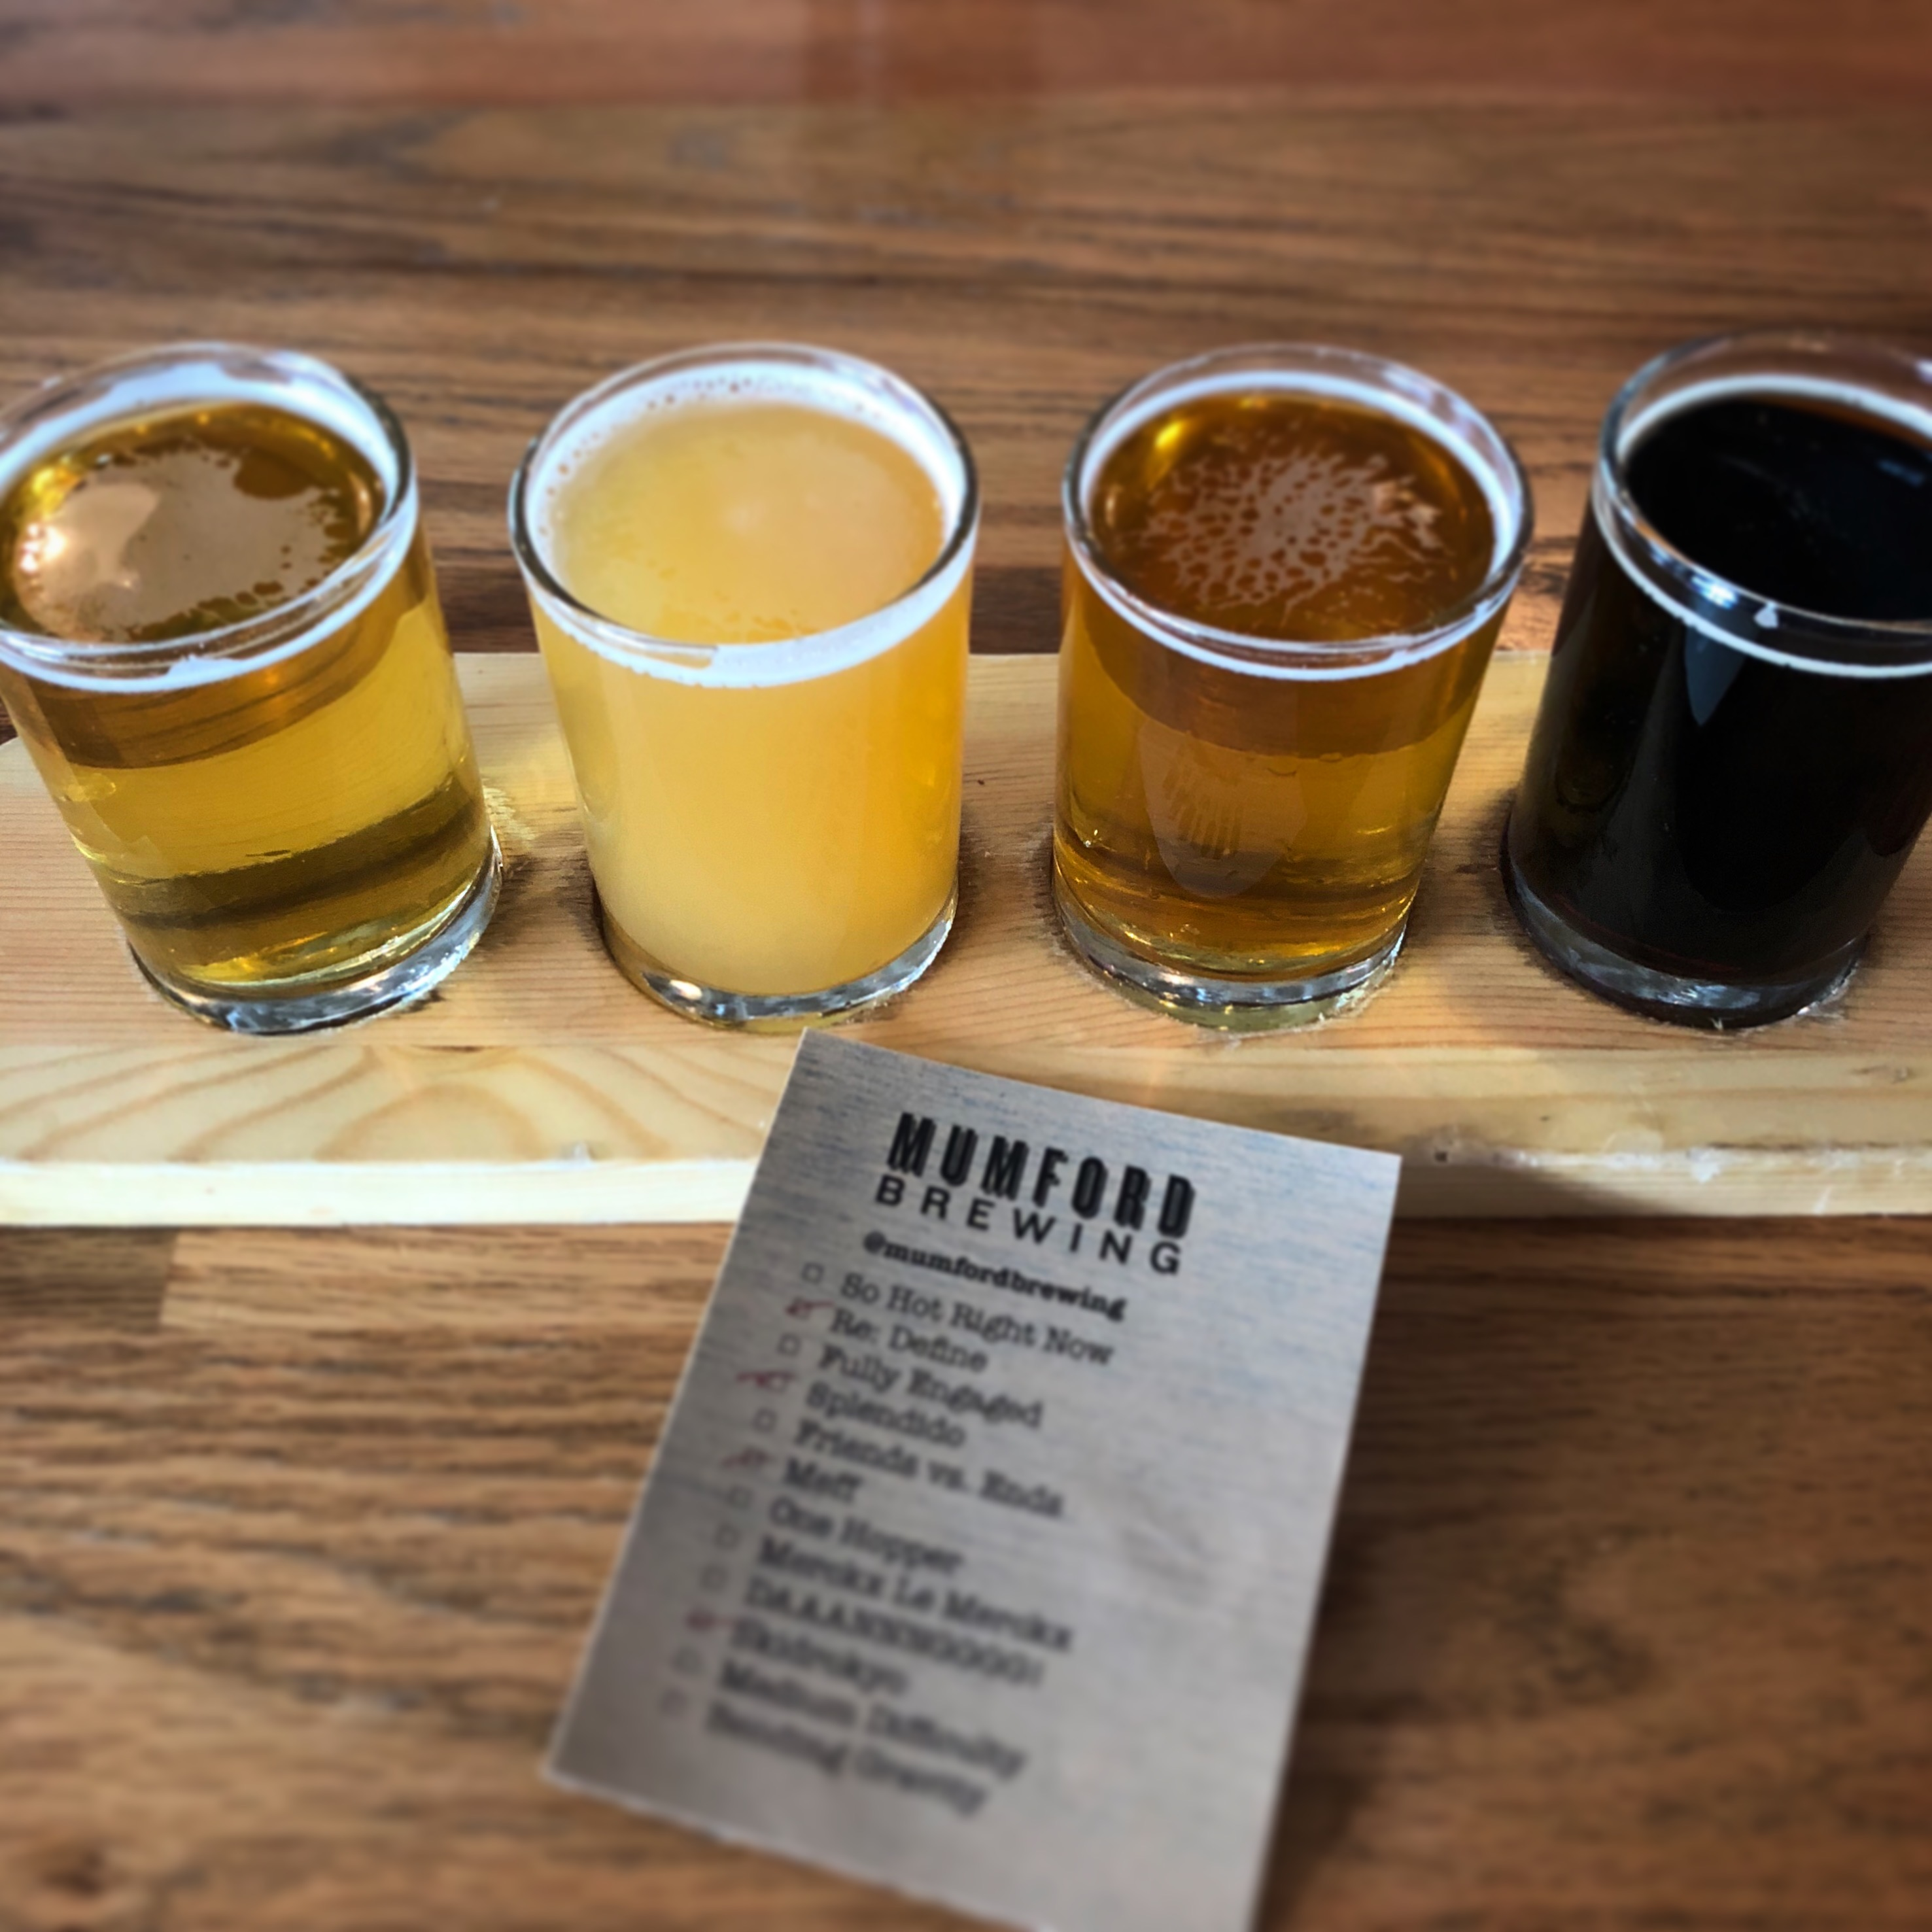 A taster tray at Mumford Brewing in Los Angeles.